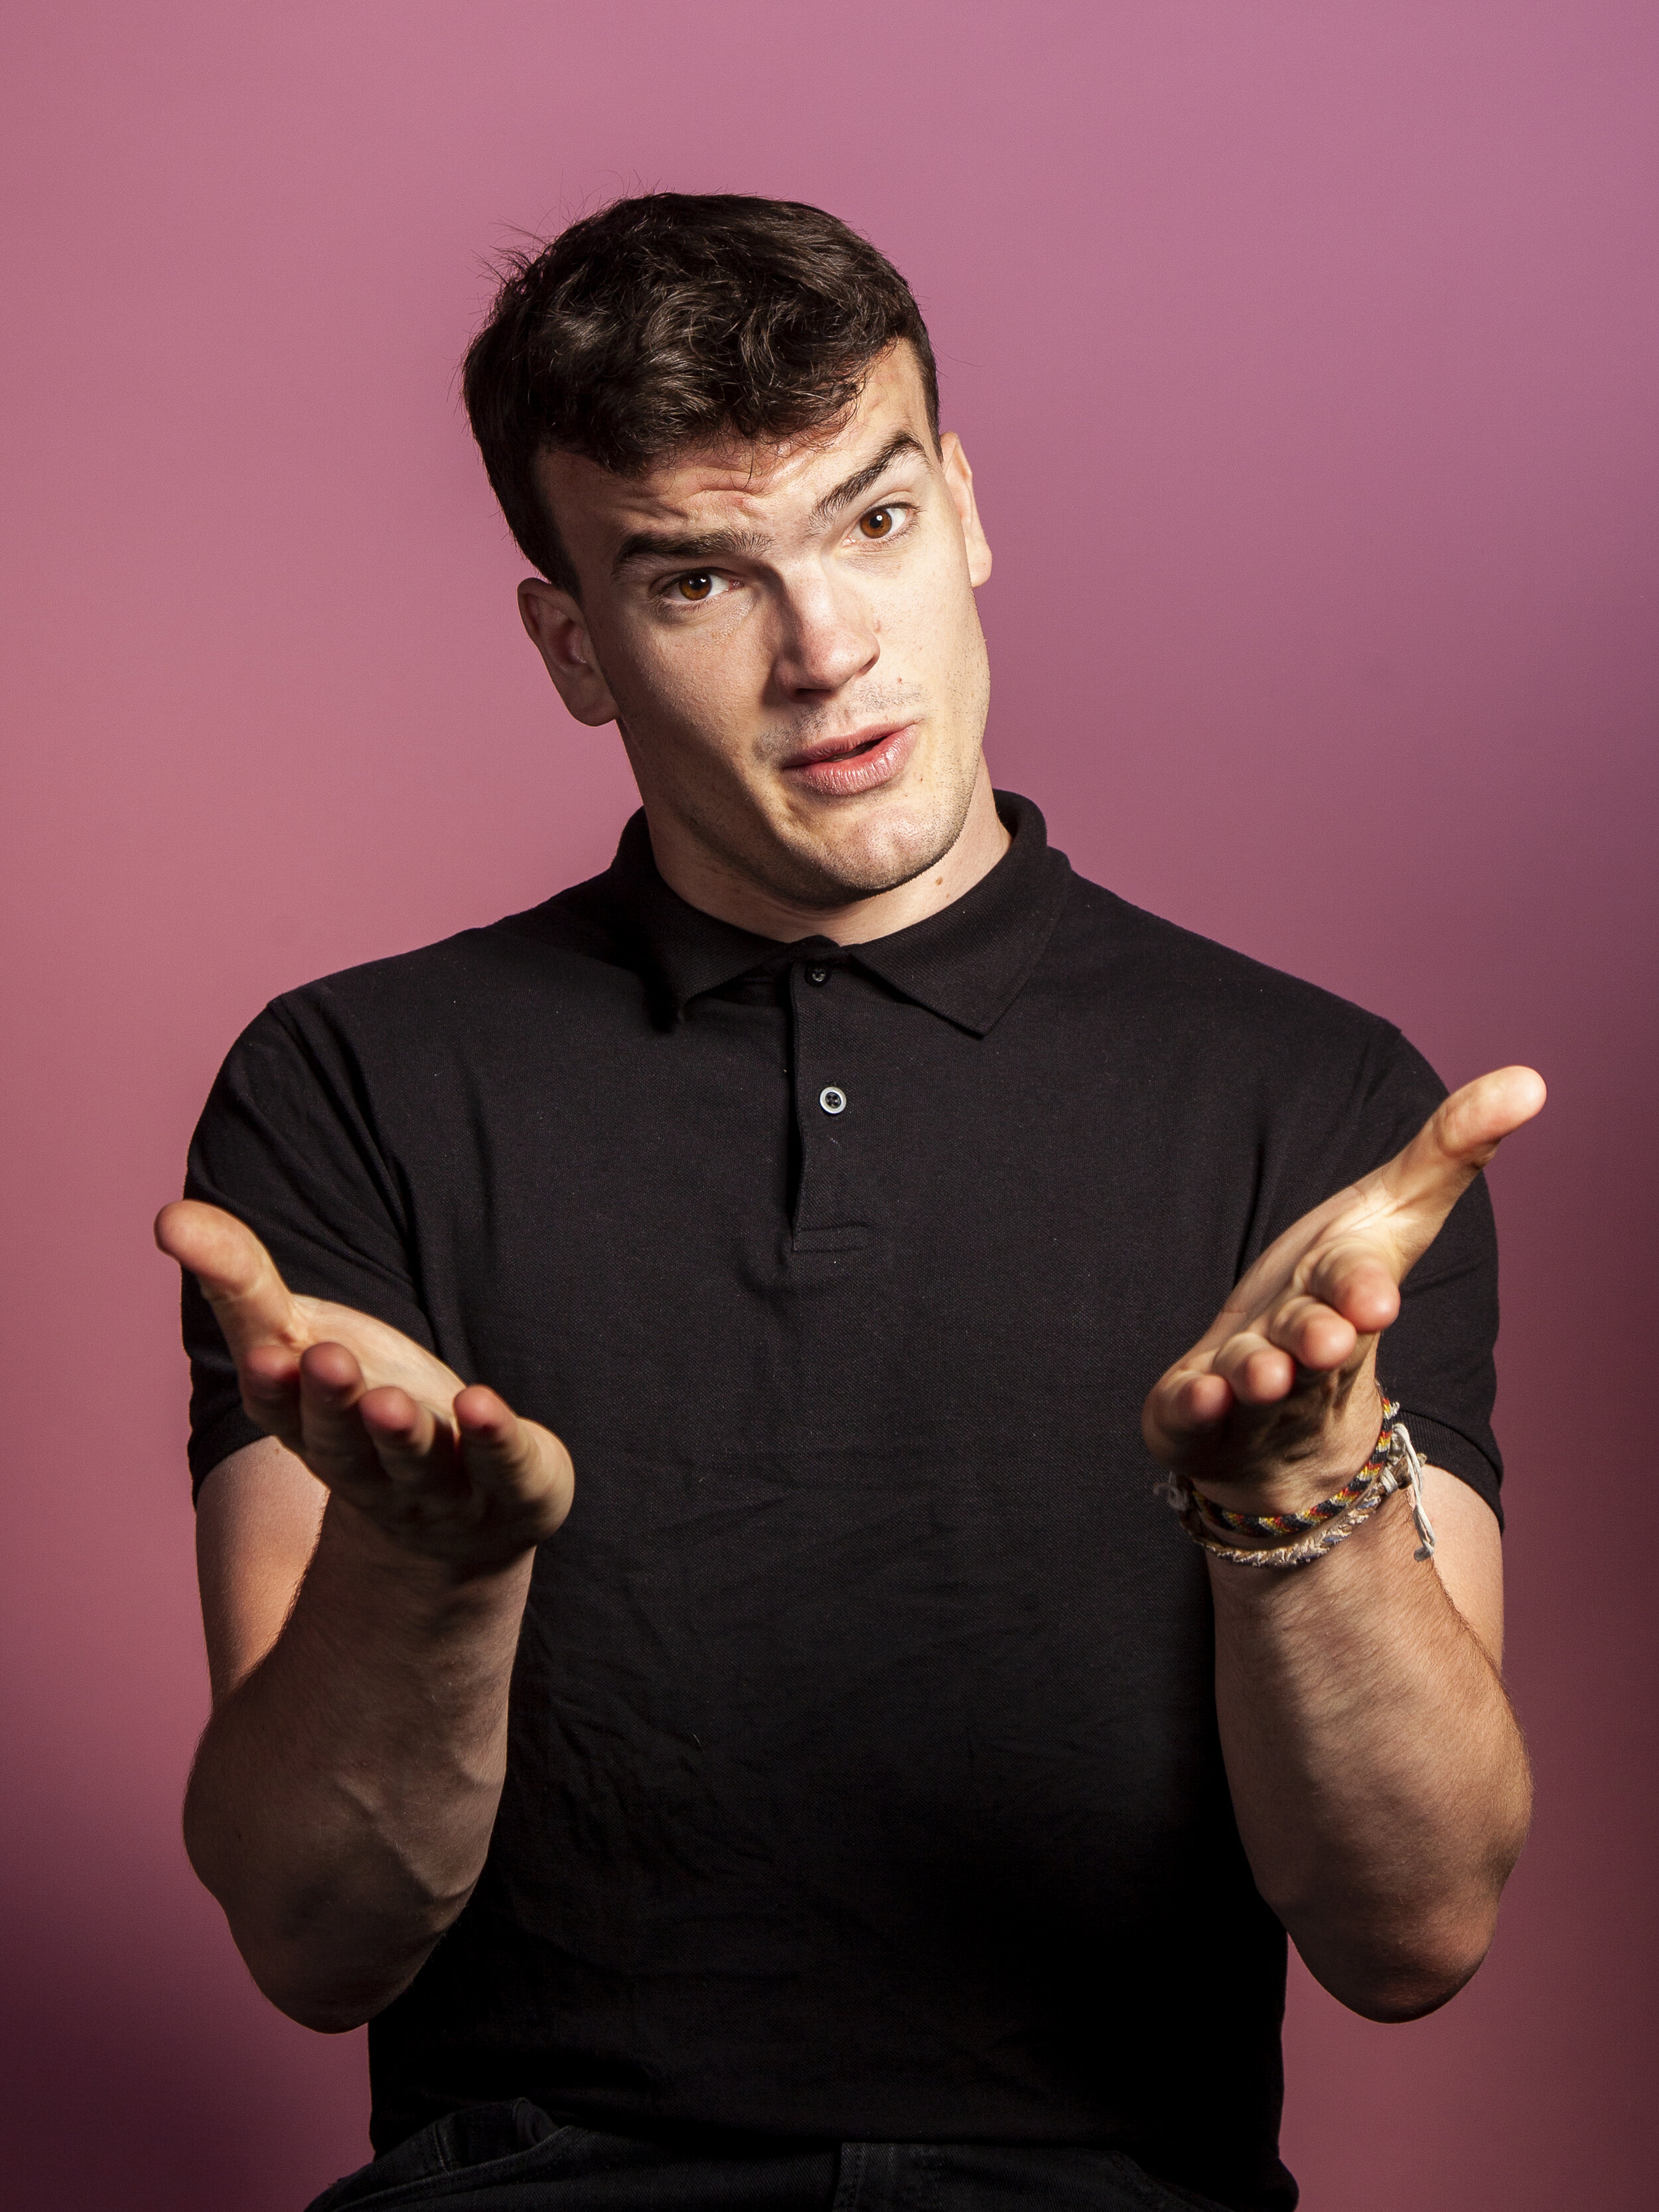 Report: The Man in Edinburgh - The Man enjoys phenomenal success at the Edinburgh Fringe Festival 2019The Man was sold out throughout August and received huge critical acclaim including:5 Stars - The Scotsman5 Stars - EdFringe Review5 Stars - London StudentThe Man only had 3 reviews.The Man will return in late 2019 and 2020 so stay tuned for more information.